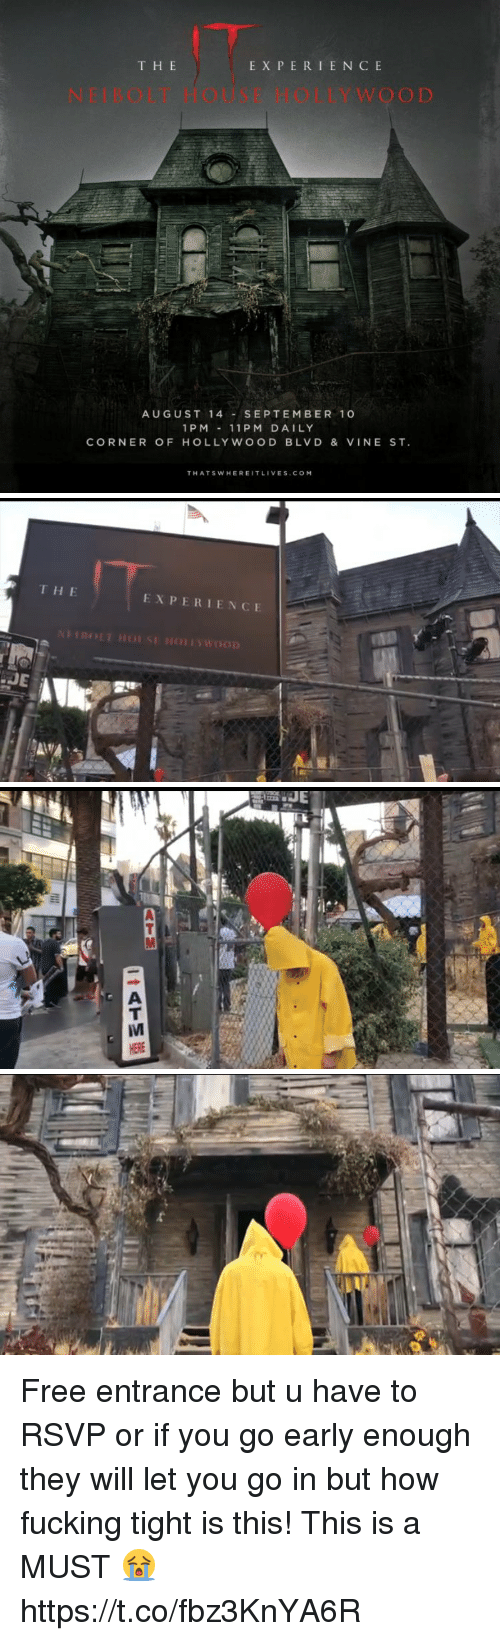 Experiencers: T H E  EXPERIENC E  NEIBOLT HOUSE HOLLYWOOD  AUGUST 14SEPTEMBER 10  1 PM11 PM DAILY  CORNER OF HOLLYWOOD BLVD & VINE ST.  THATSWHEREITLIVES.COM   THE  EXPERIENCE  JE Free entrance but u have to RSVP or if you go early enough they will let you go in but how fucking tight is this! This is a MUST 😭 https://t.co/fbz3KnYA6R